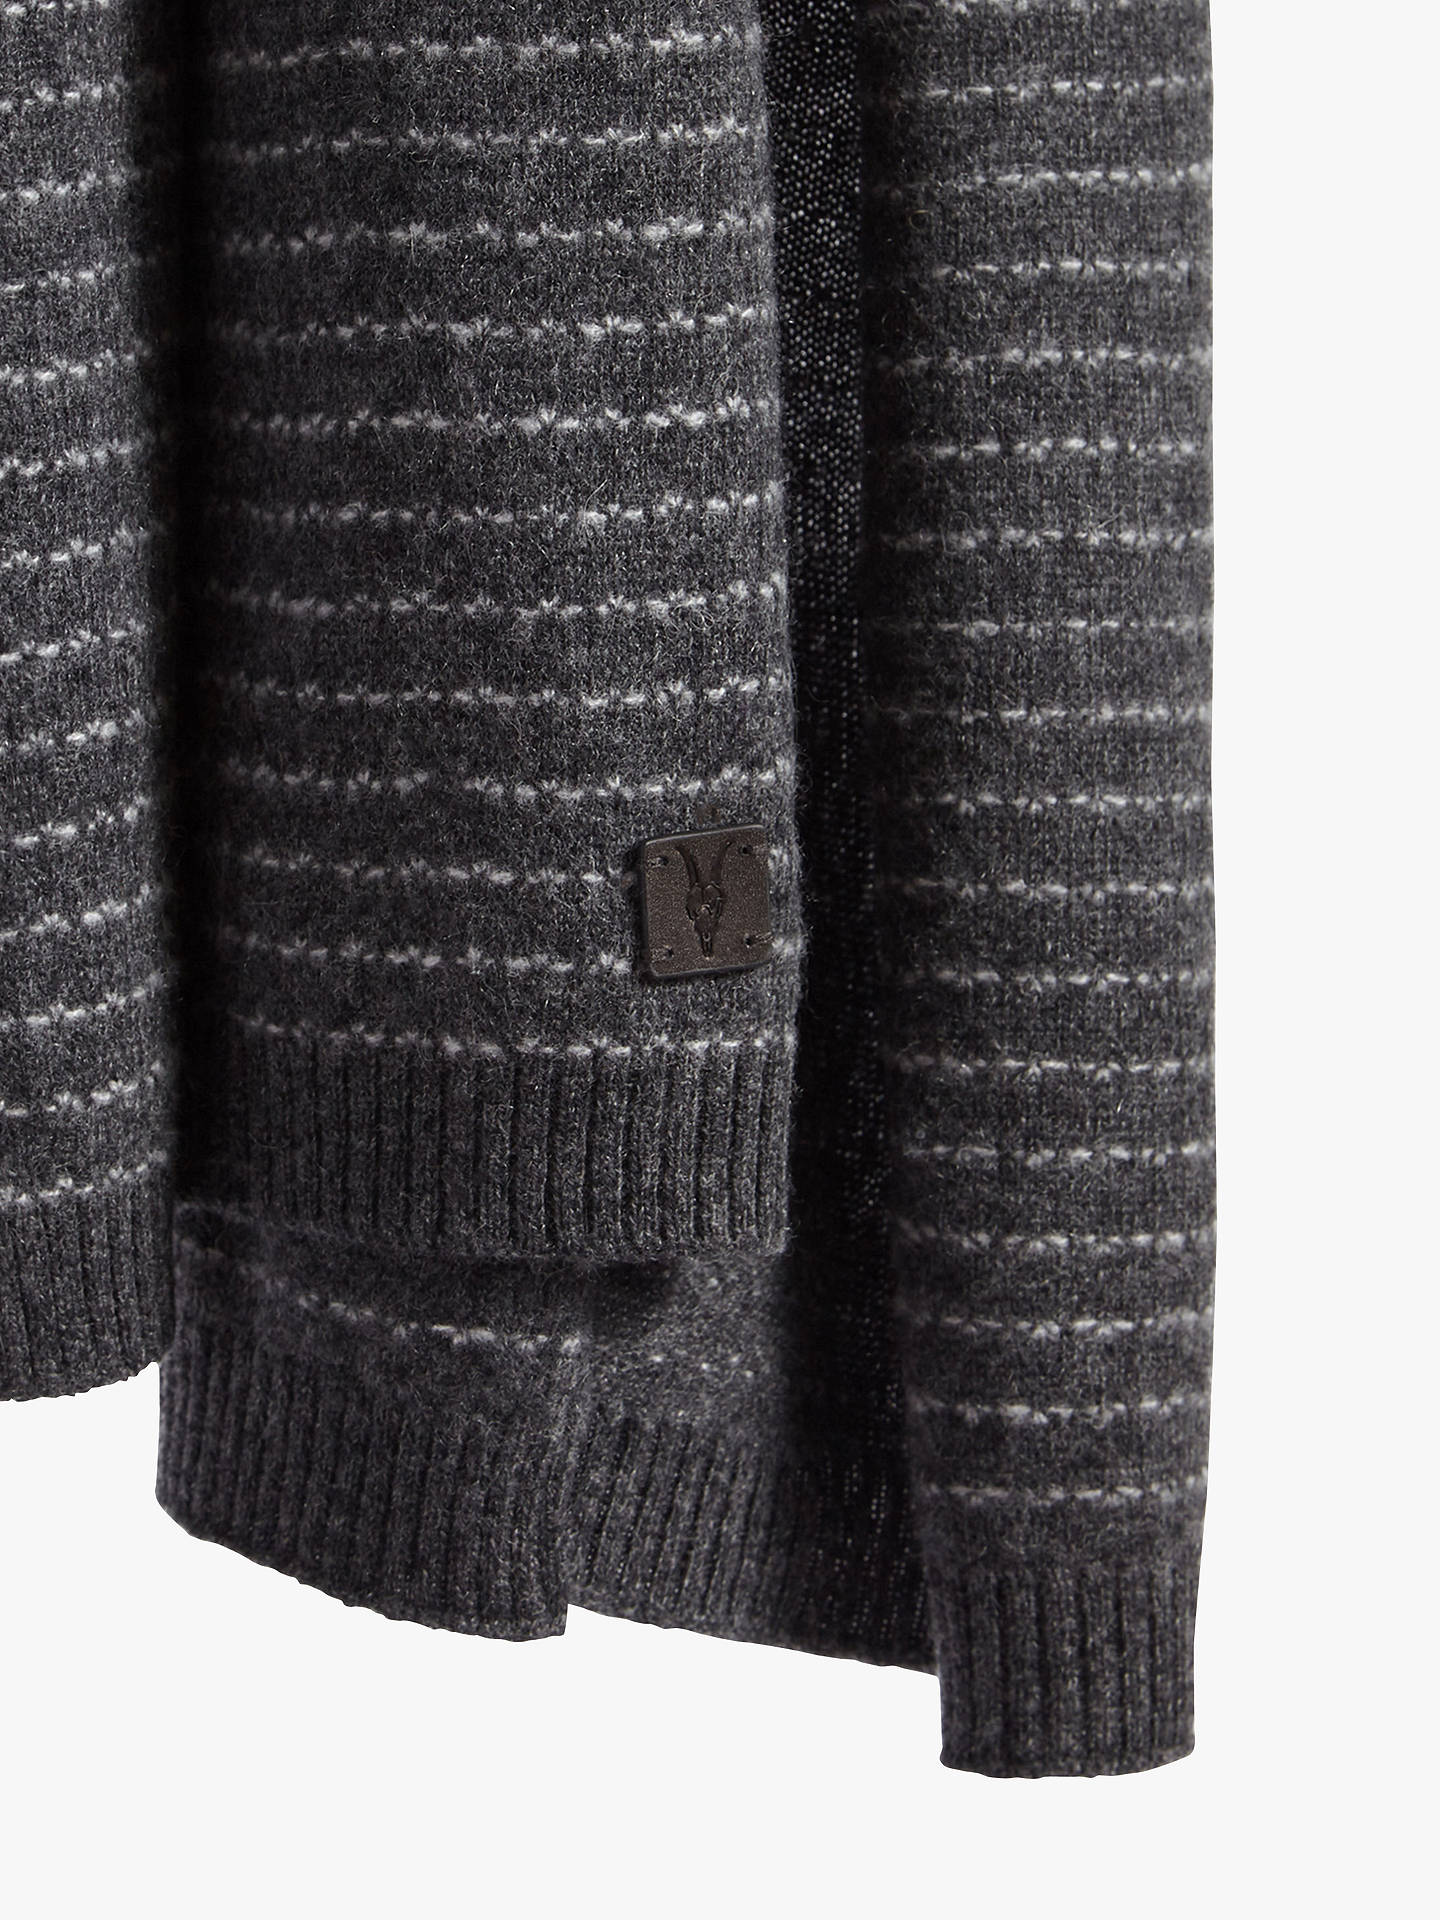 BuyAllSaints Thin Stripe Scarf, Cinder Black/Grey, One size Online at johnlewis.com